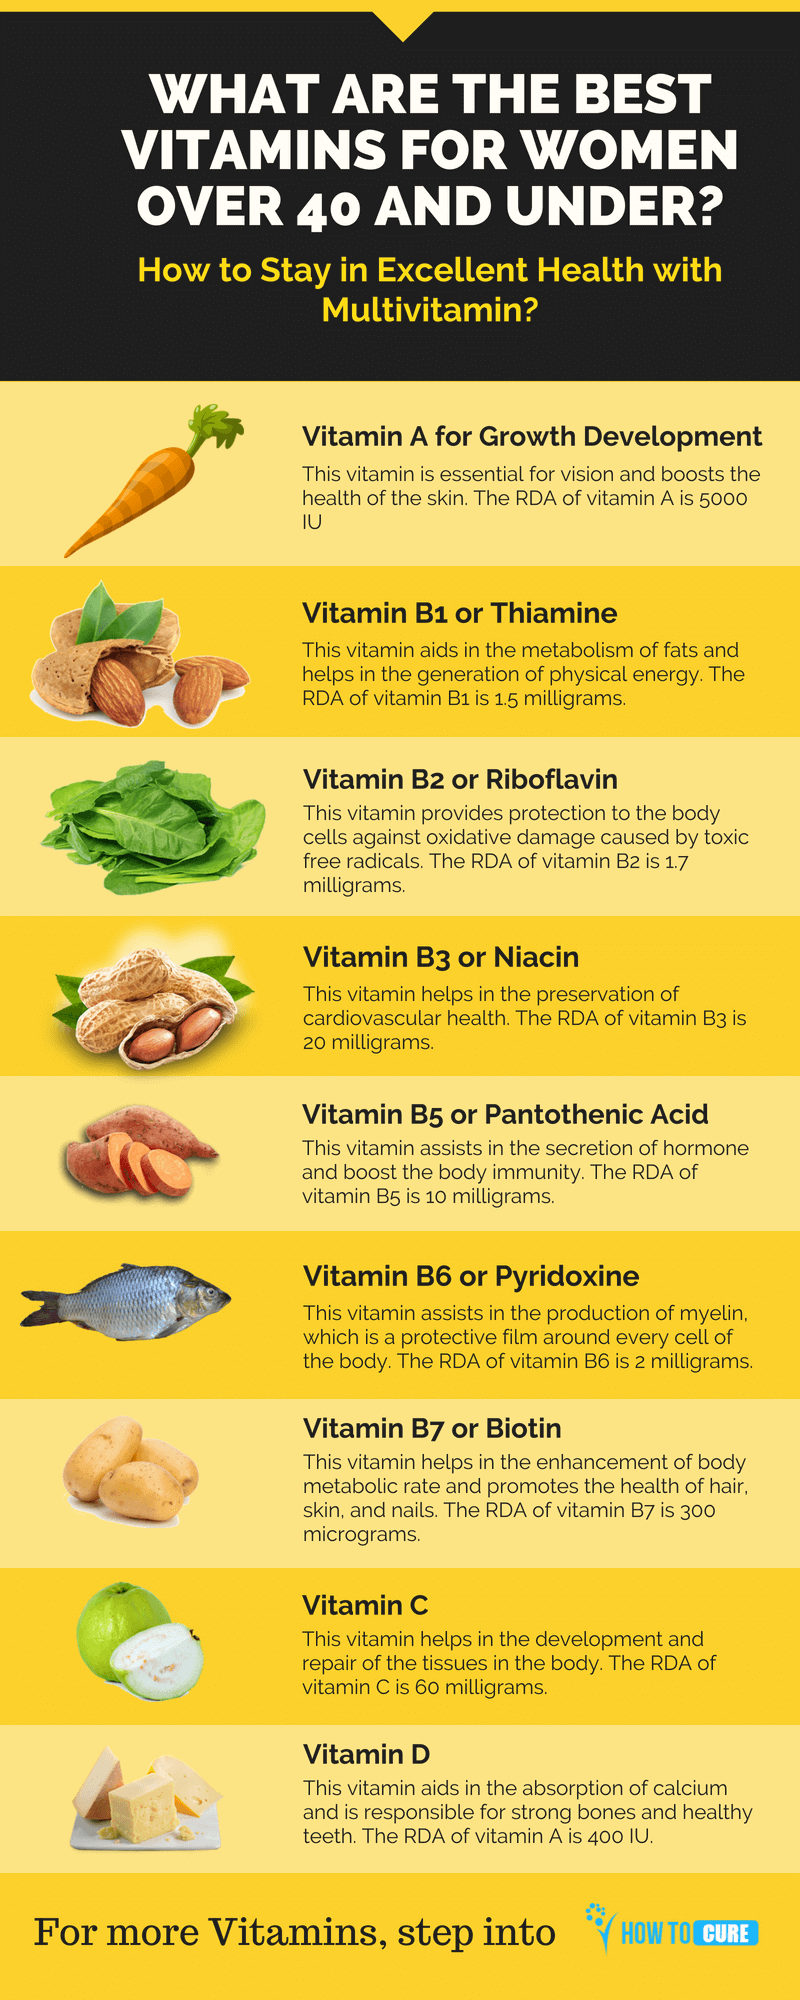 How to Stay in Excellent Health with these Best Multivitamin for Women